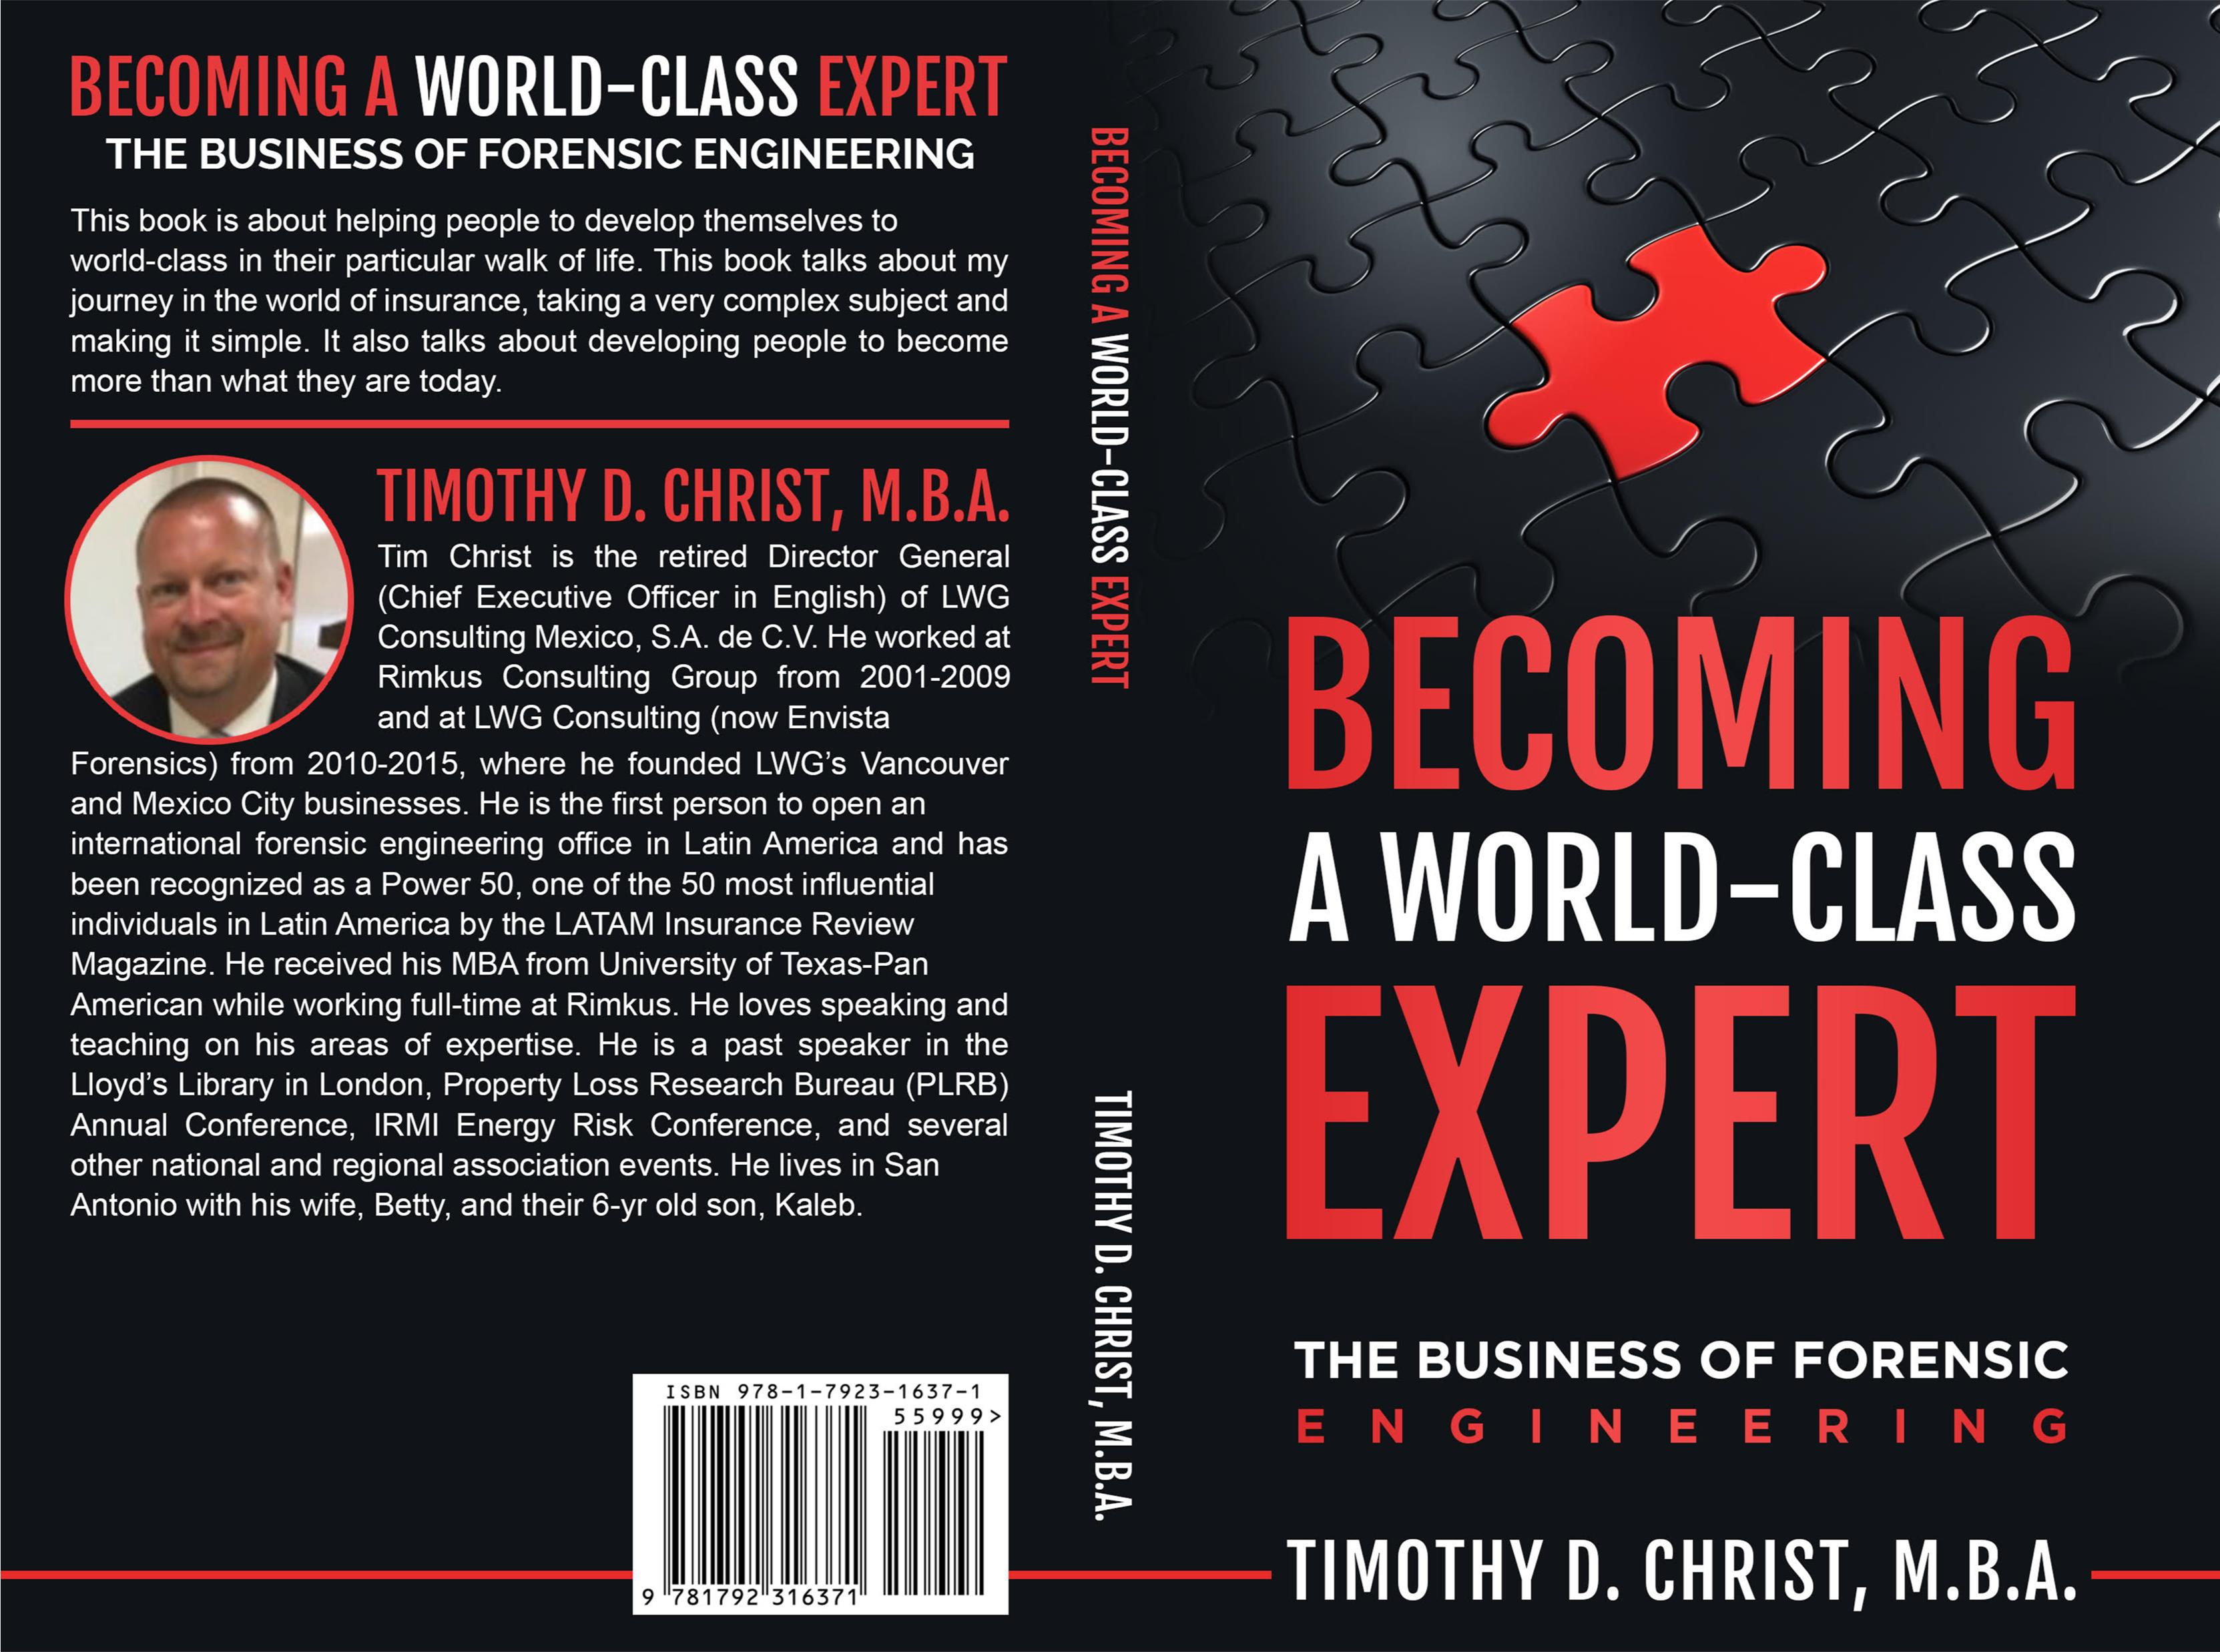 Becoming a World-Class Expert: The Business of Forensic Engineering cover image